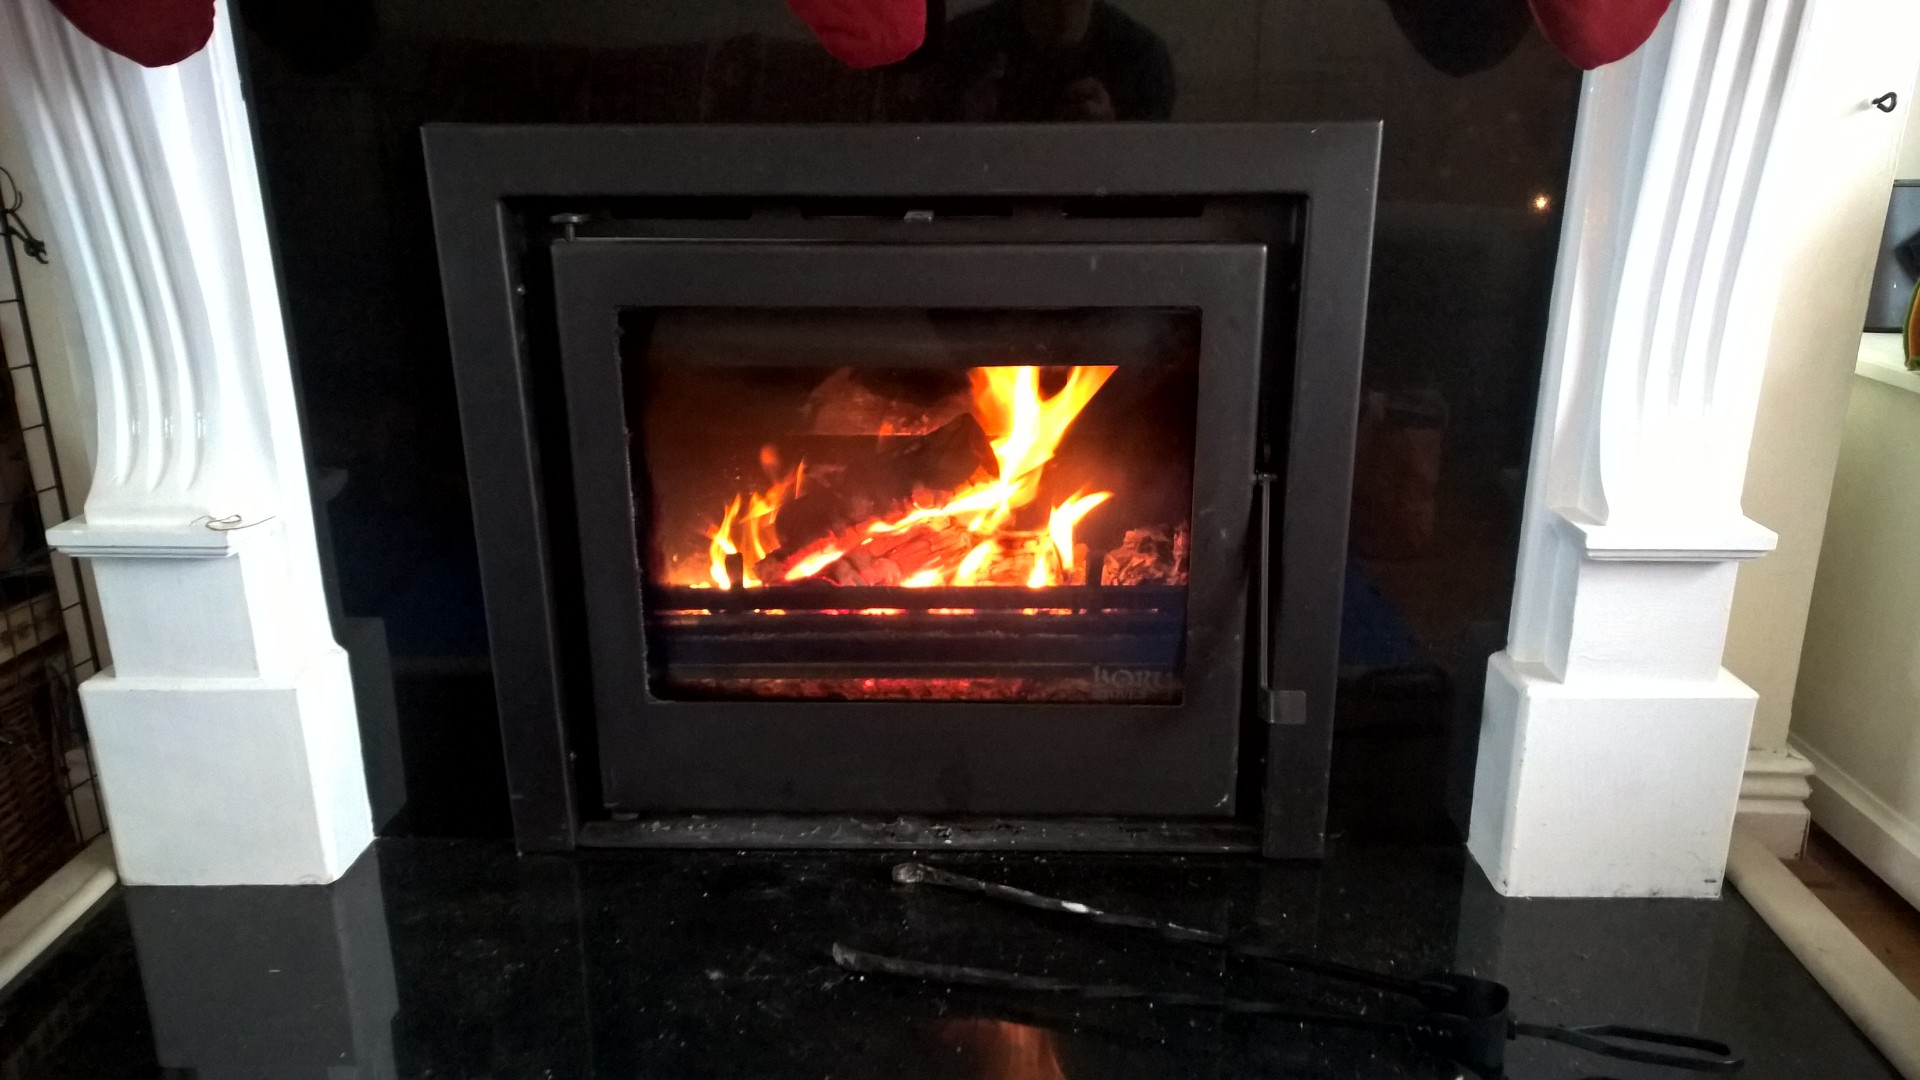 A Boru 600i Insert Wood Burning Stove, with a back boiler to heat the whole house.